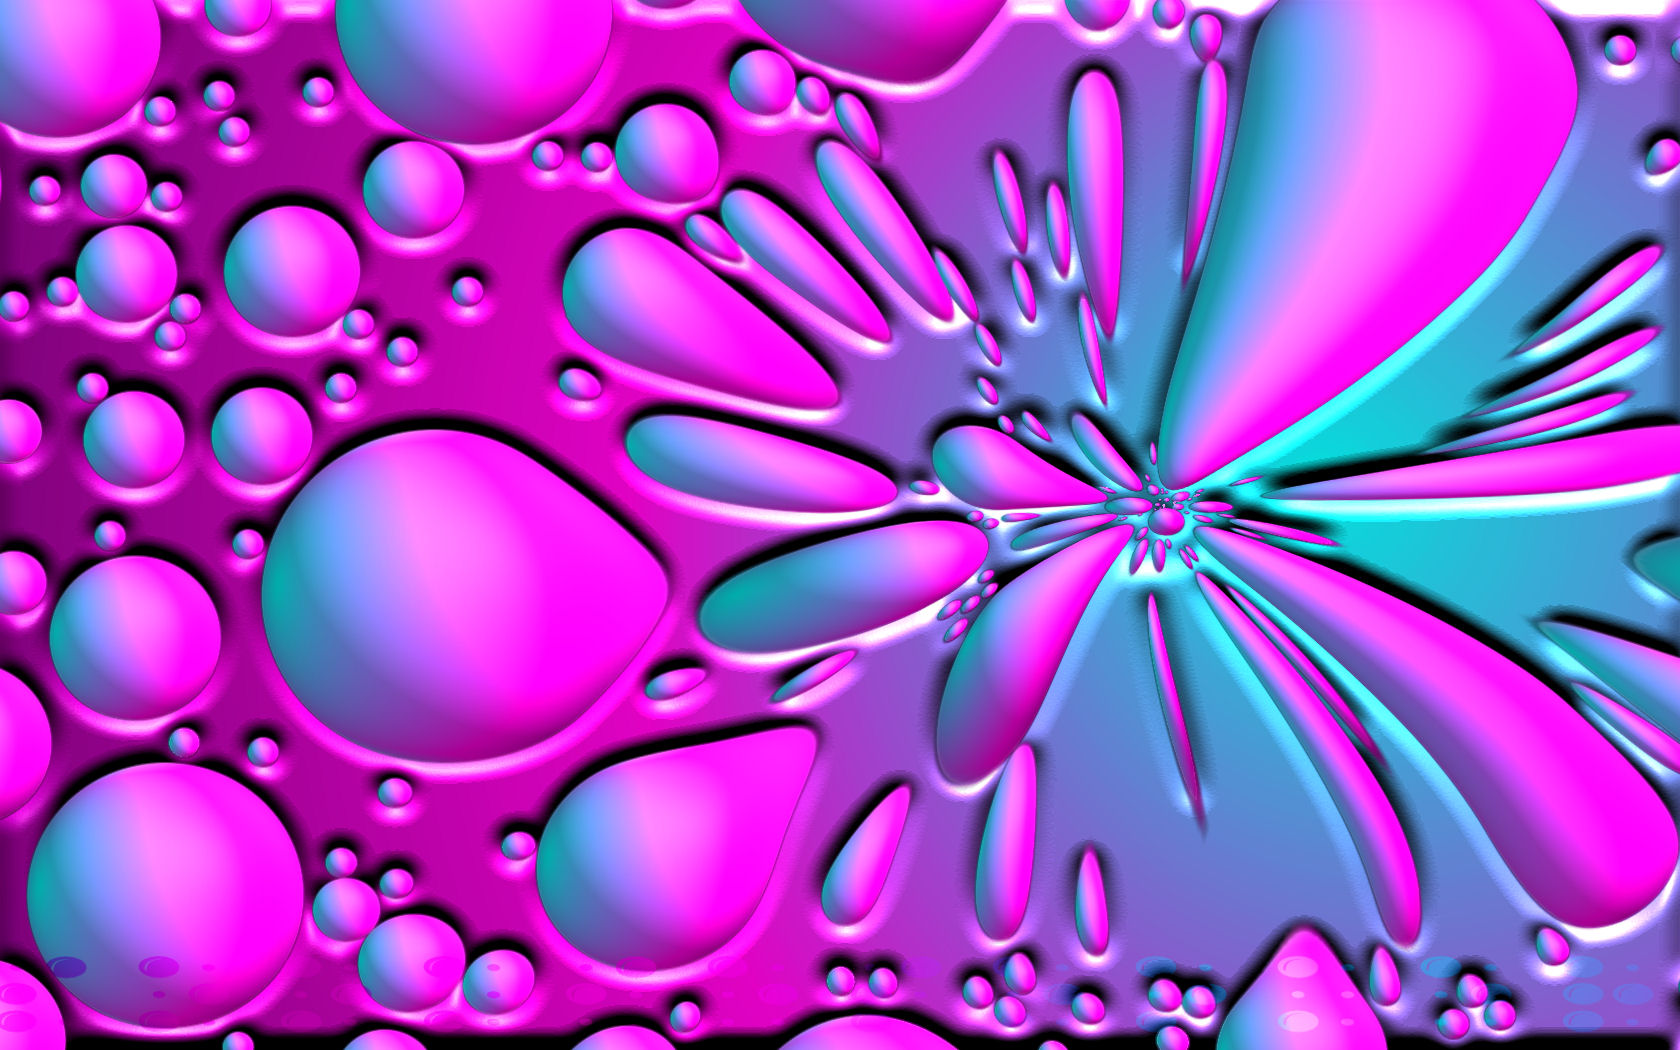 Pink and Blue Bubble 1680x1050